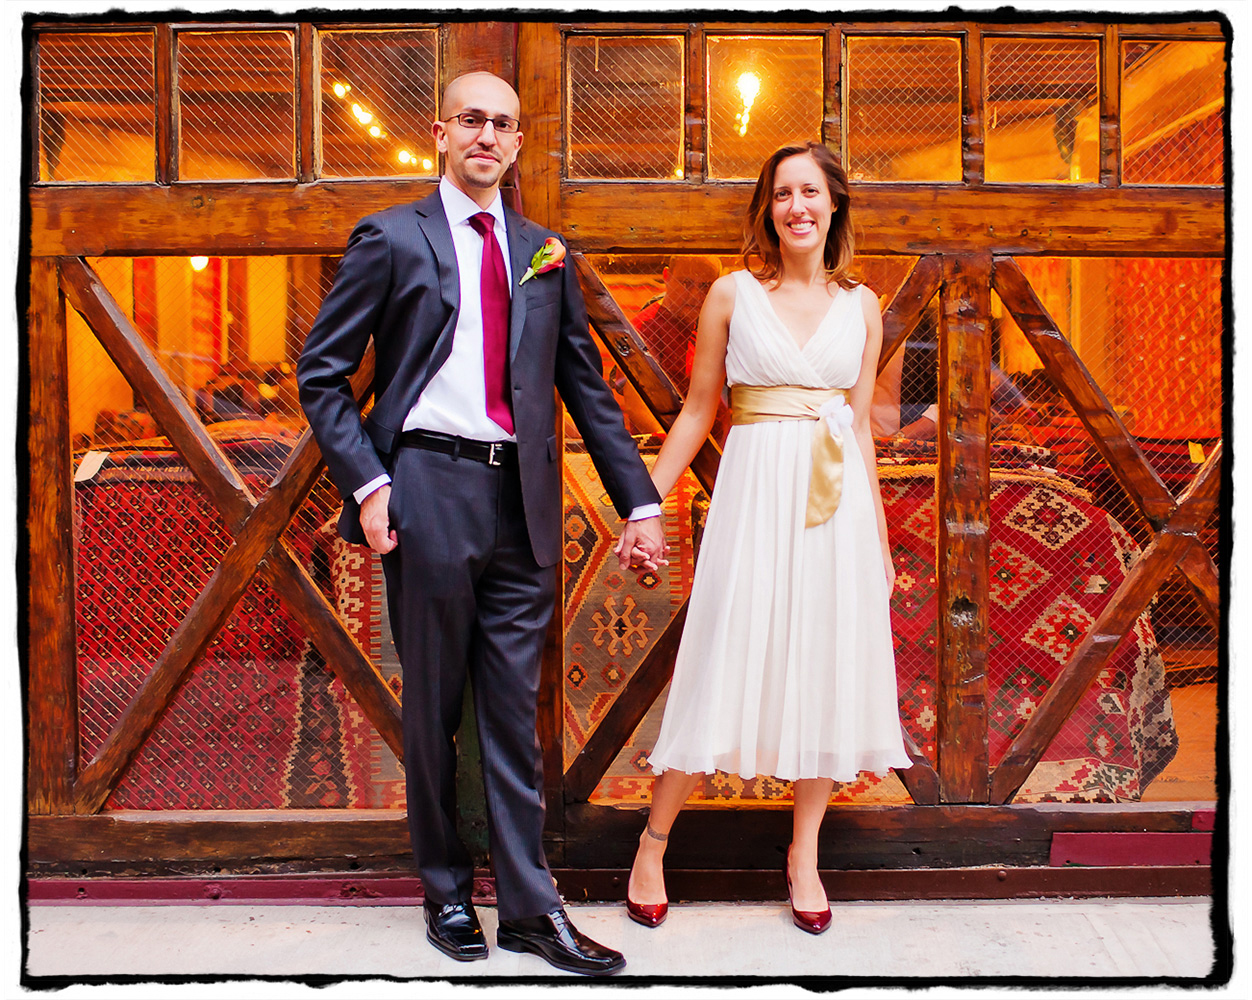 Adam and Shireen took a walk around the surrounding SoHo blocks before their wedding at Housing Works Bookstore in Manhattan.